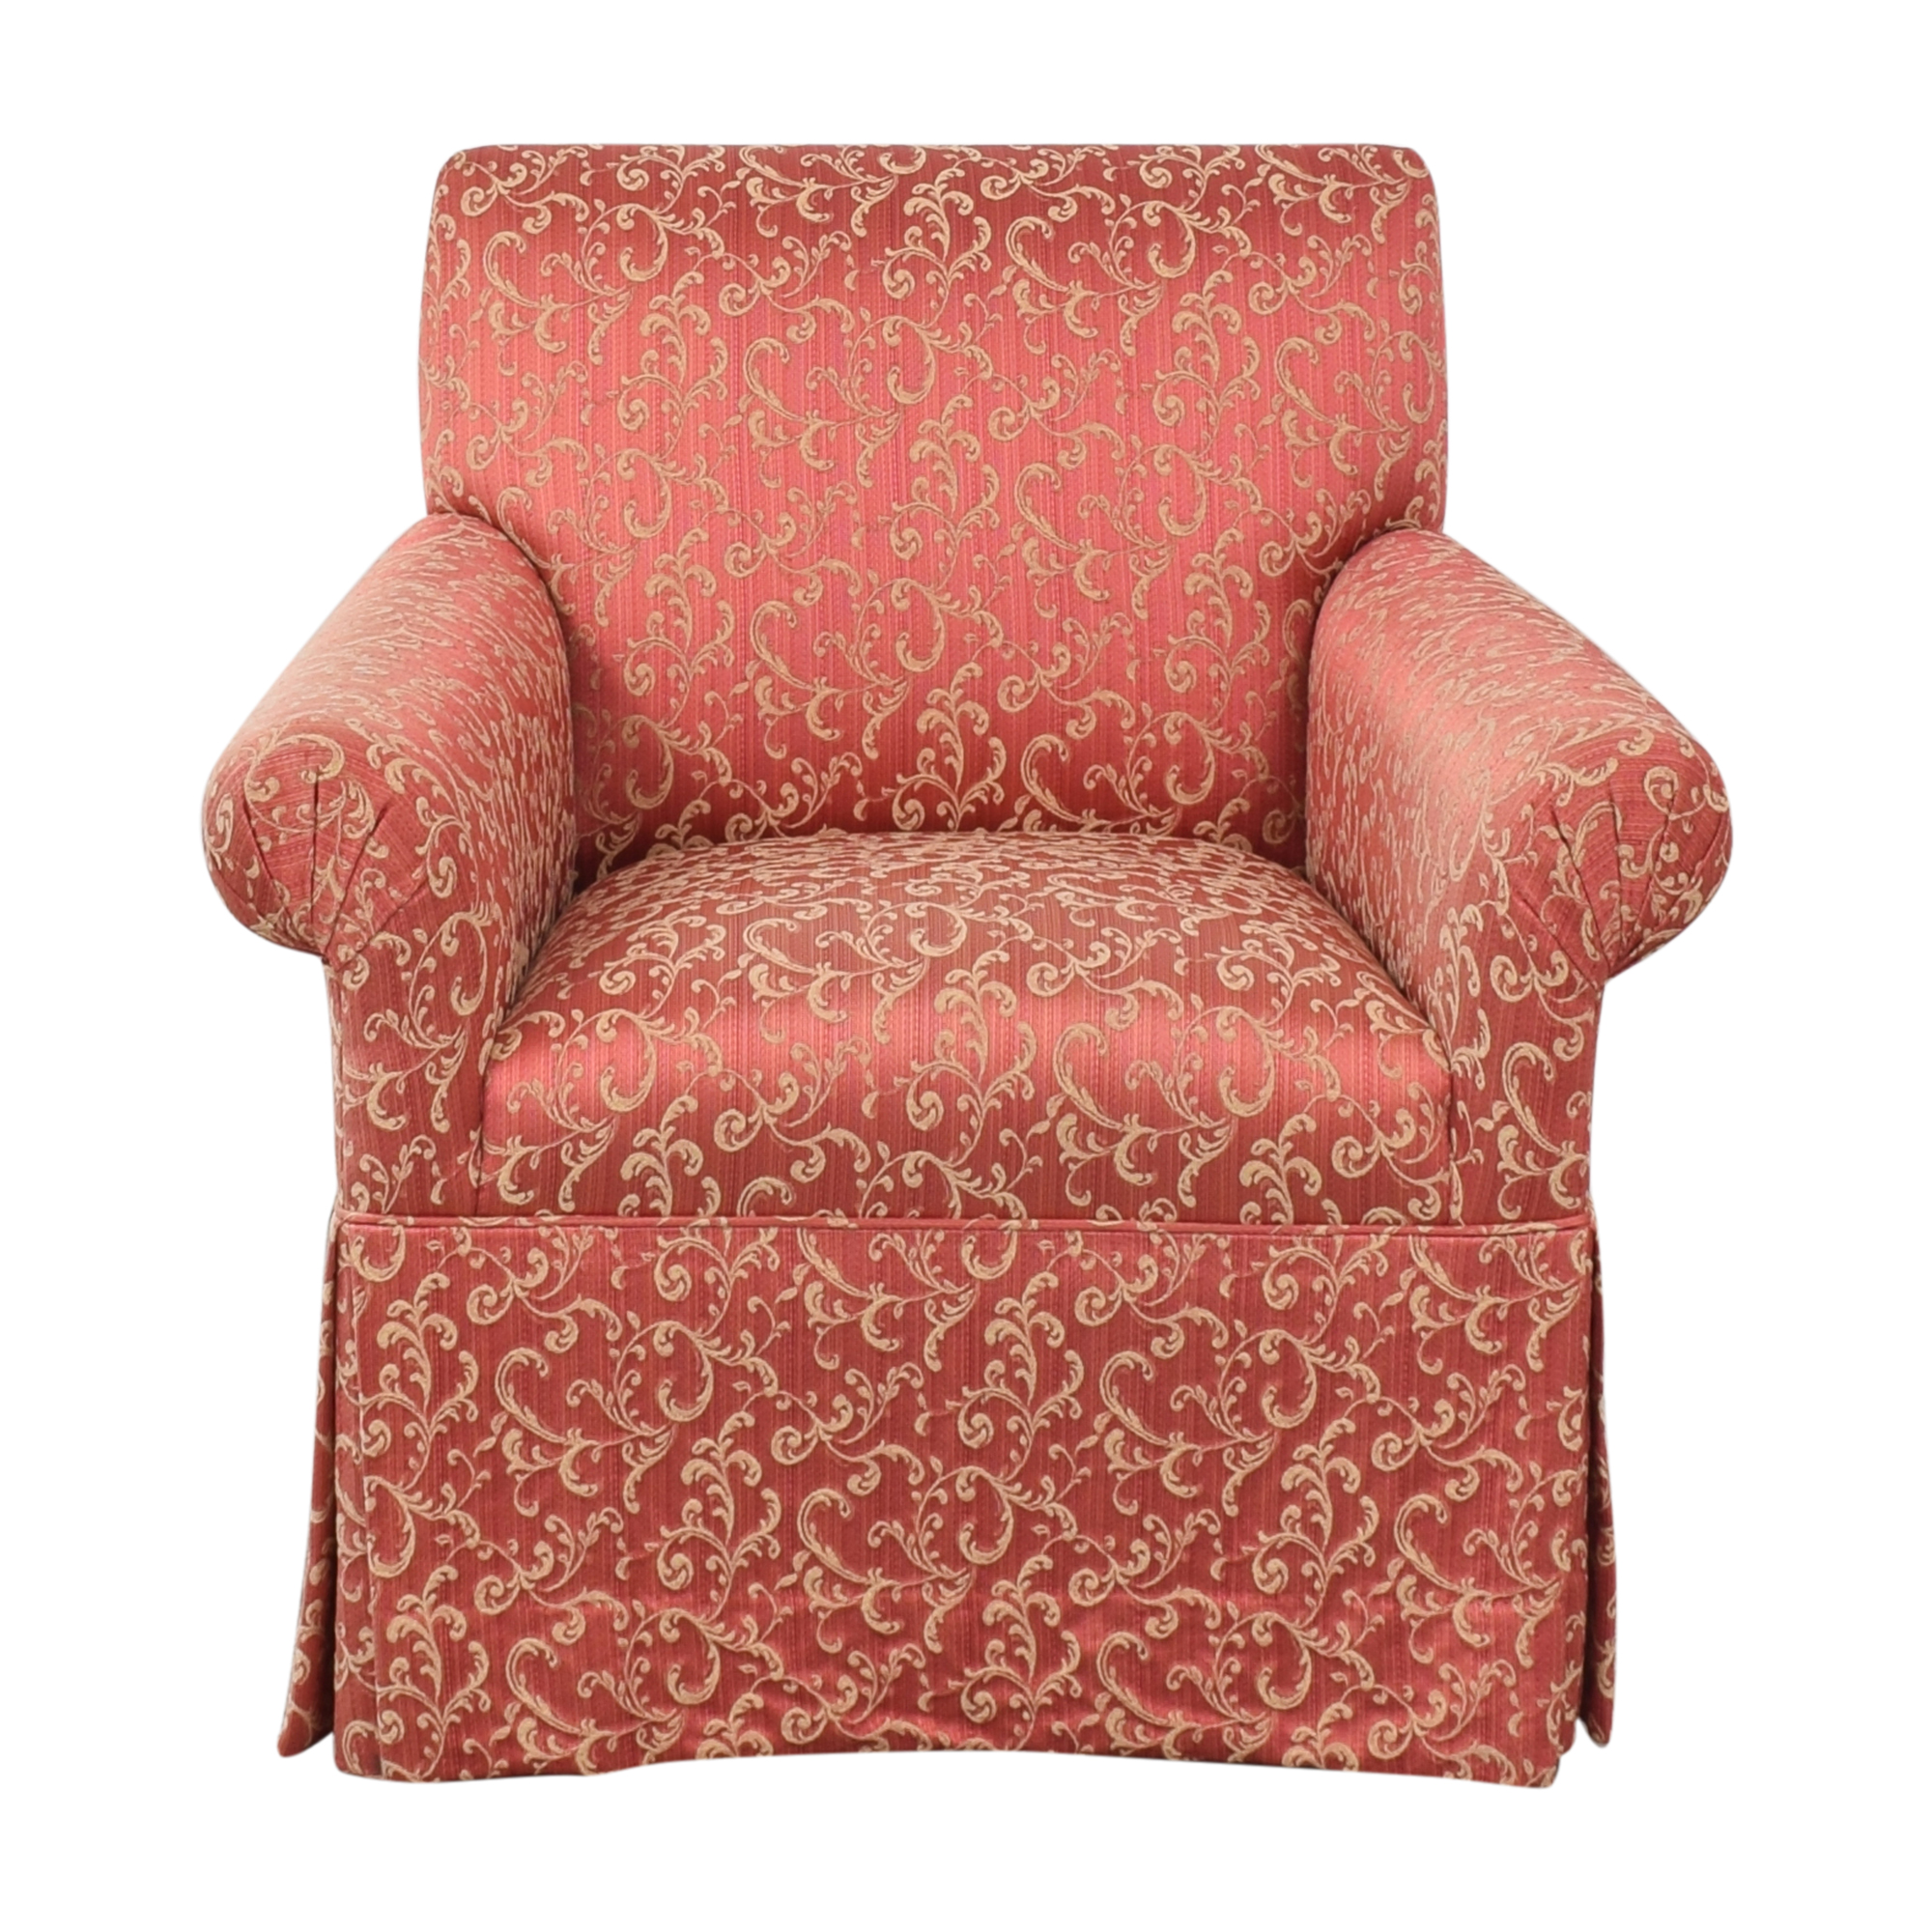 Custom Upholstered Accent Chair on sale